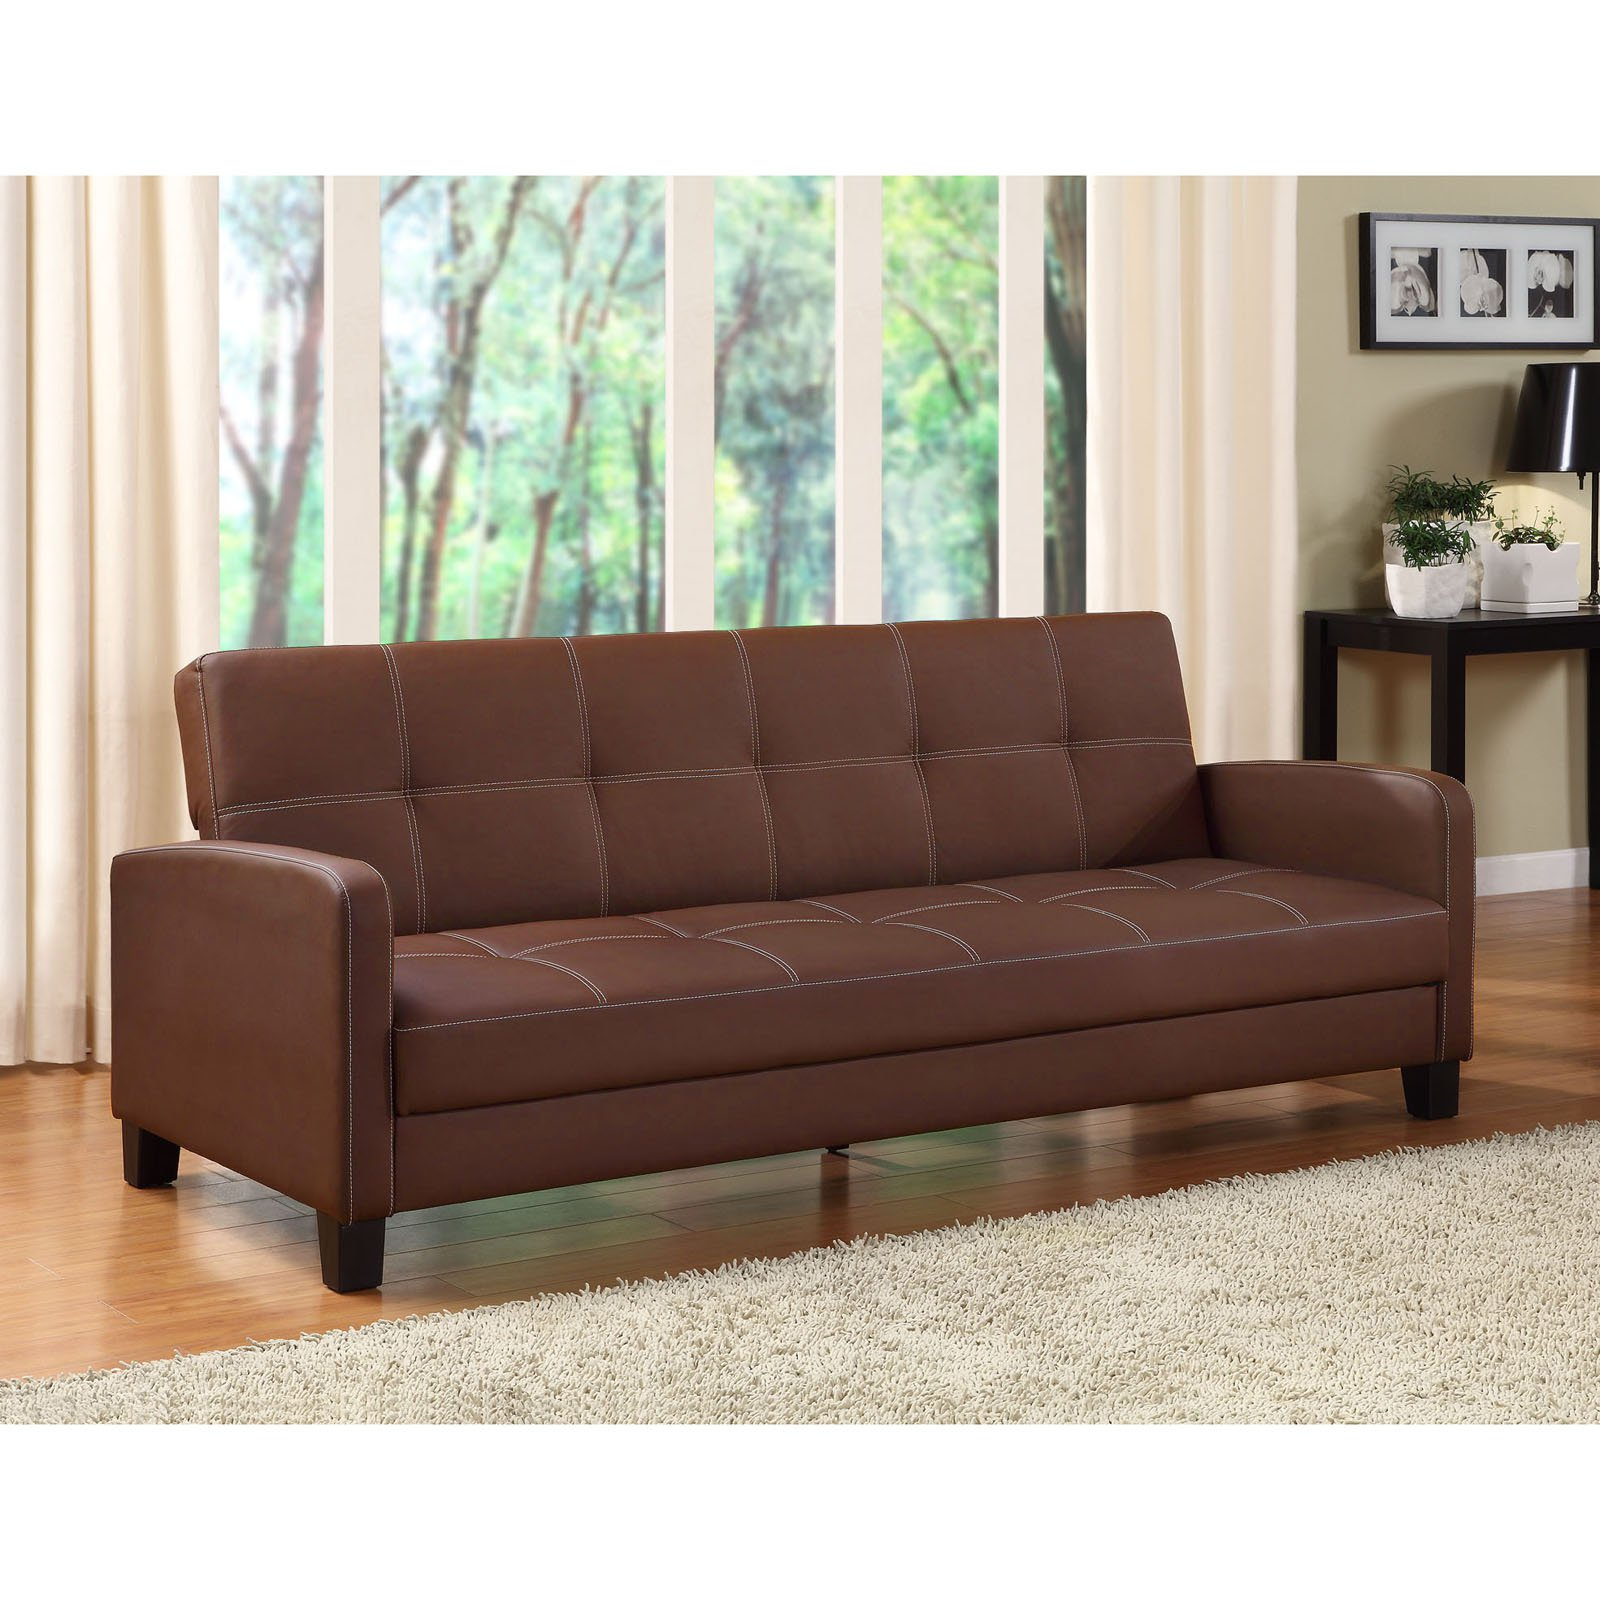 Futon Nice Dhp Delaney Futon Couch Sofa Sleeper Multiple Colors